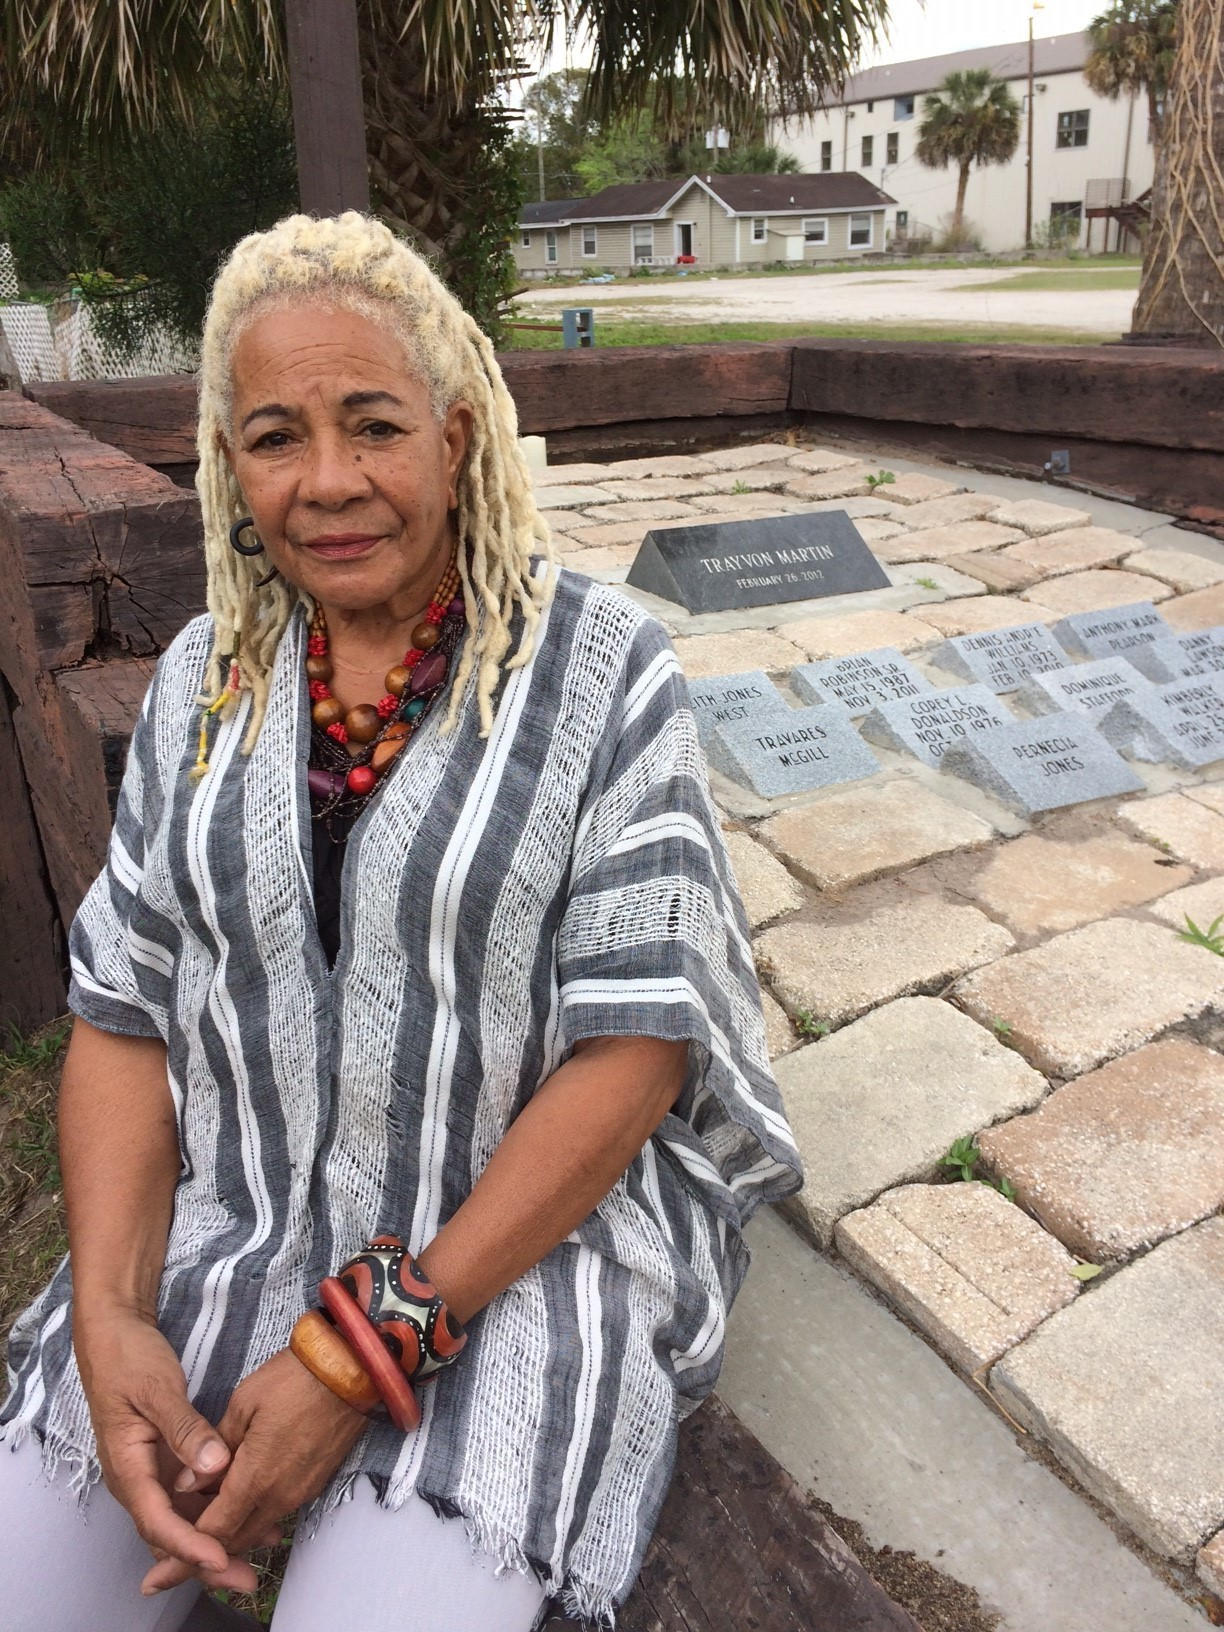 """Francis Oliver, 73, a longtime activist in Sanford's black community, at the Trayvon Martin memorial. The memorial also includes stones marked with the names of other young black people killed in Sanford before Trayvon. """"Sanford and Trayvon Martin are still ground zero,"""" she said."""